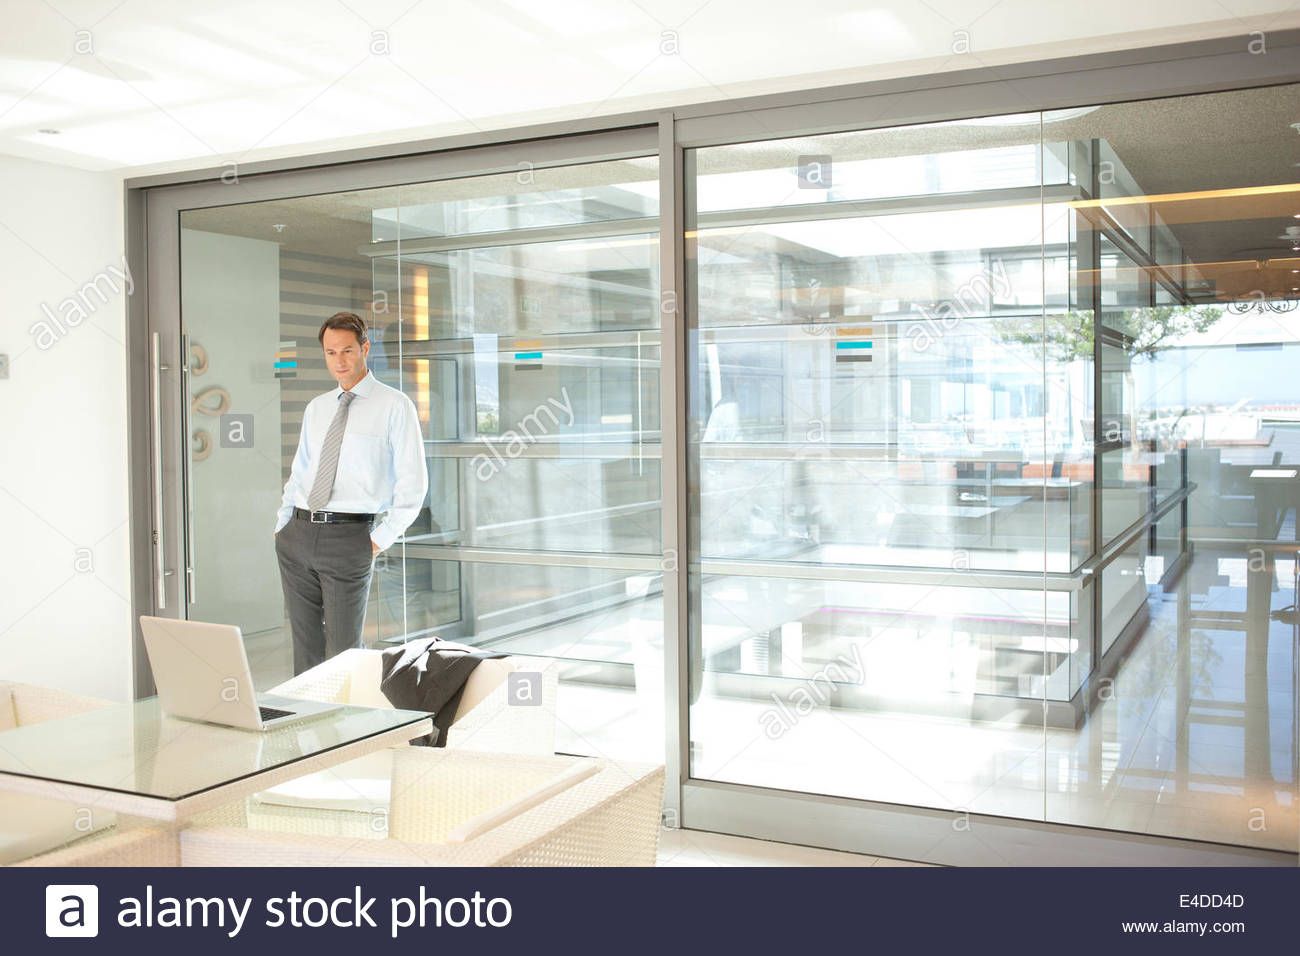 Businessman leaning against glass wall in office - Stock Image